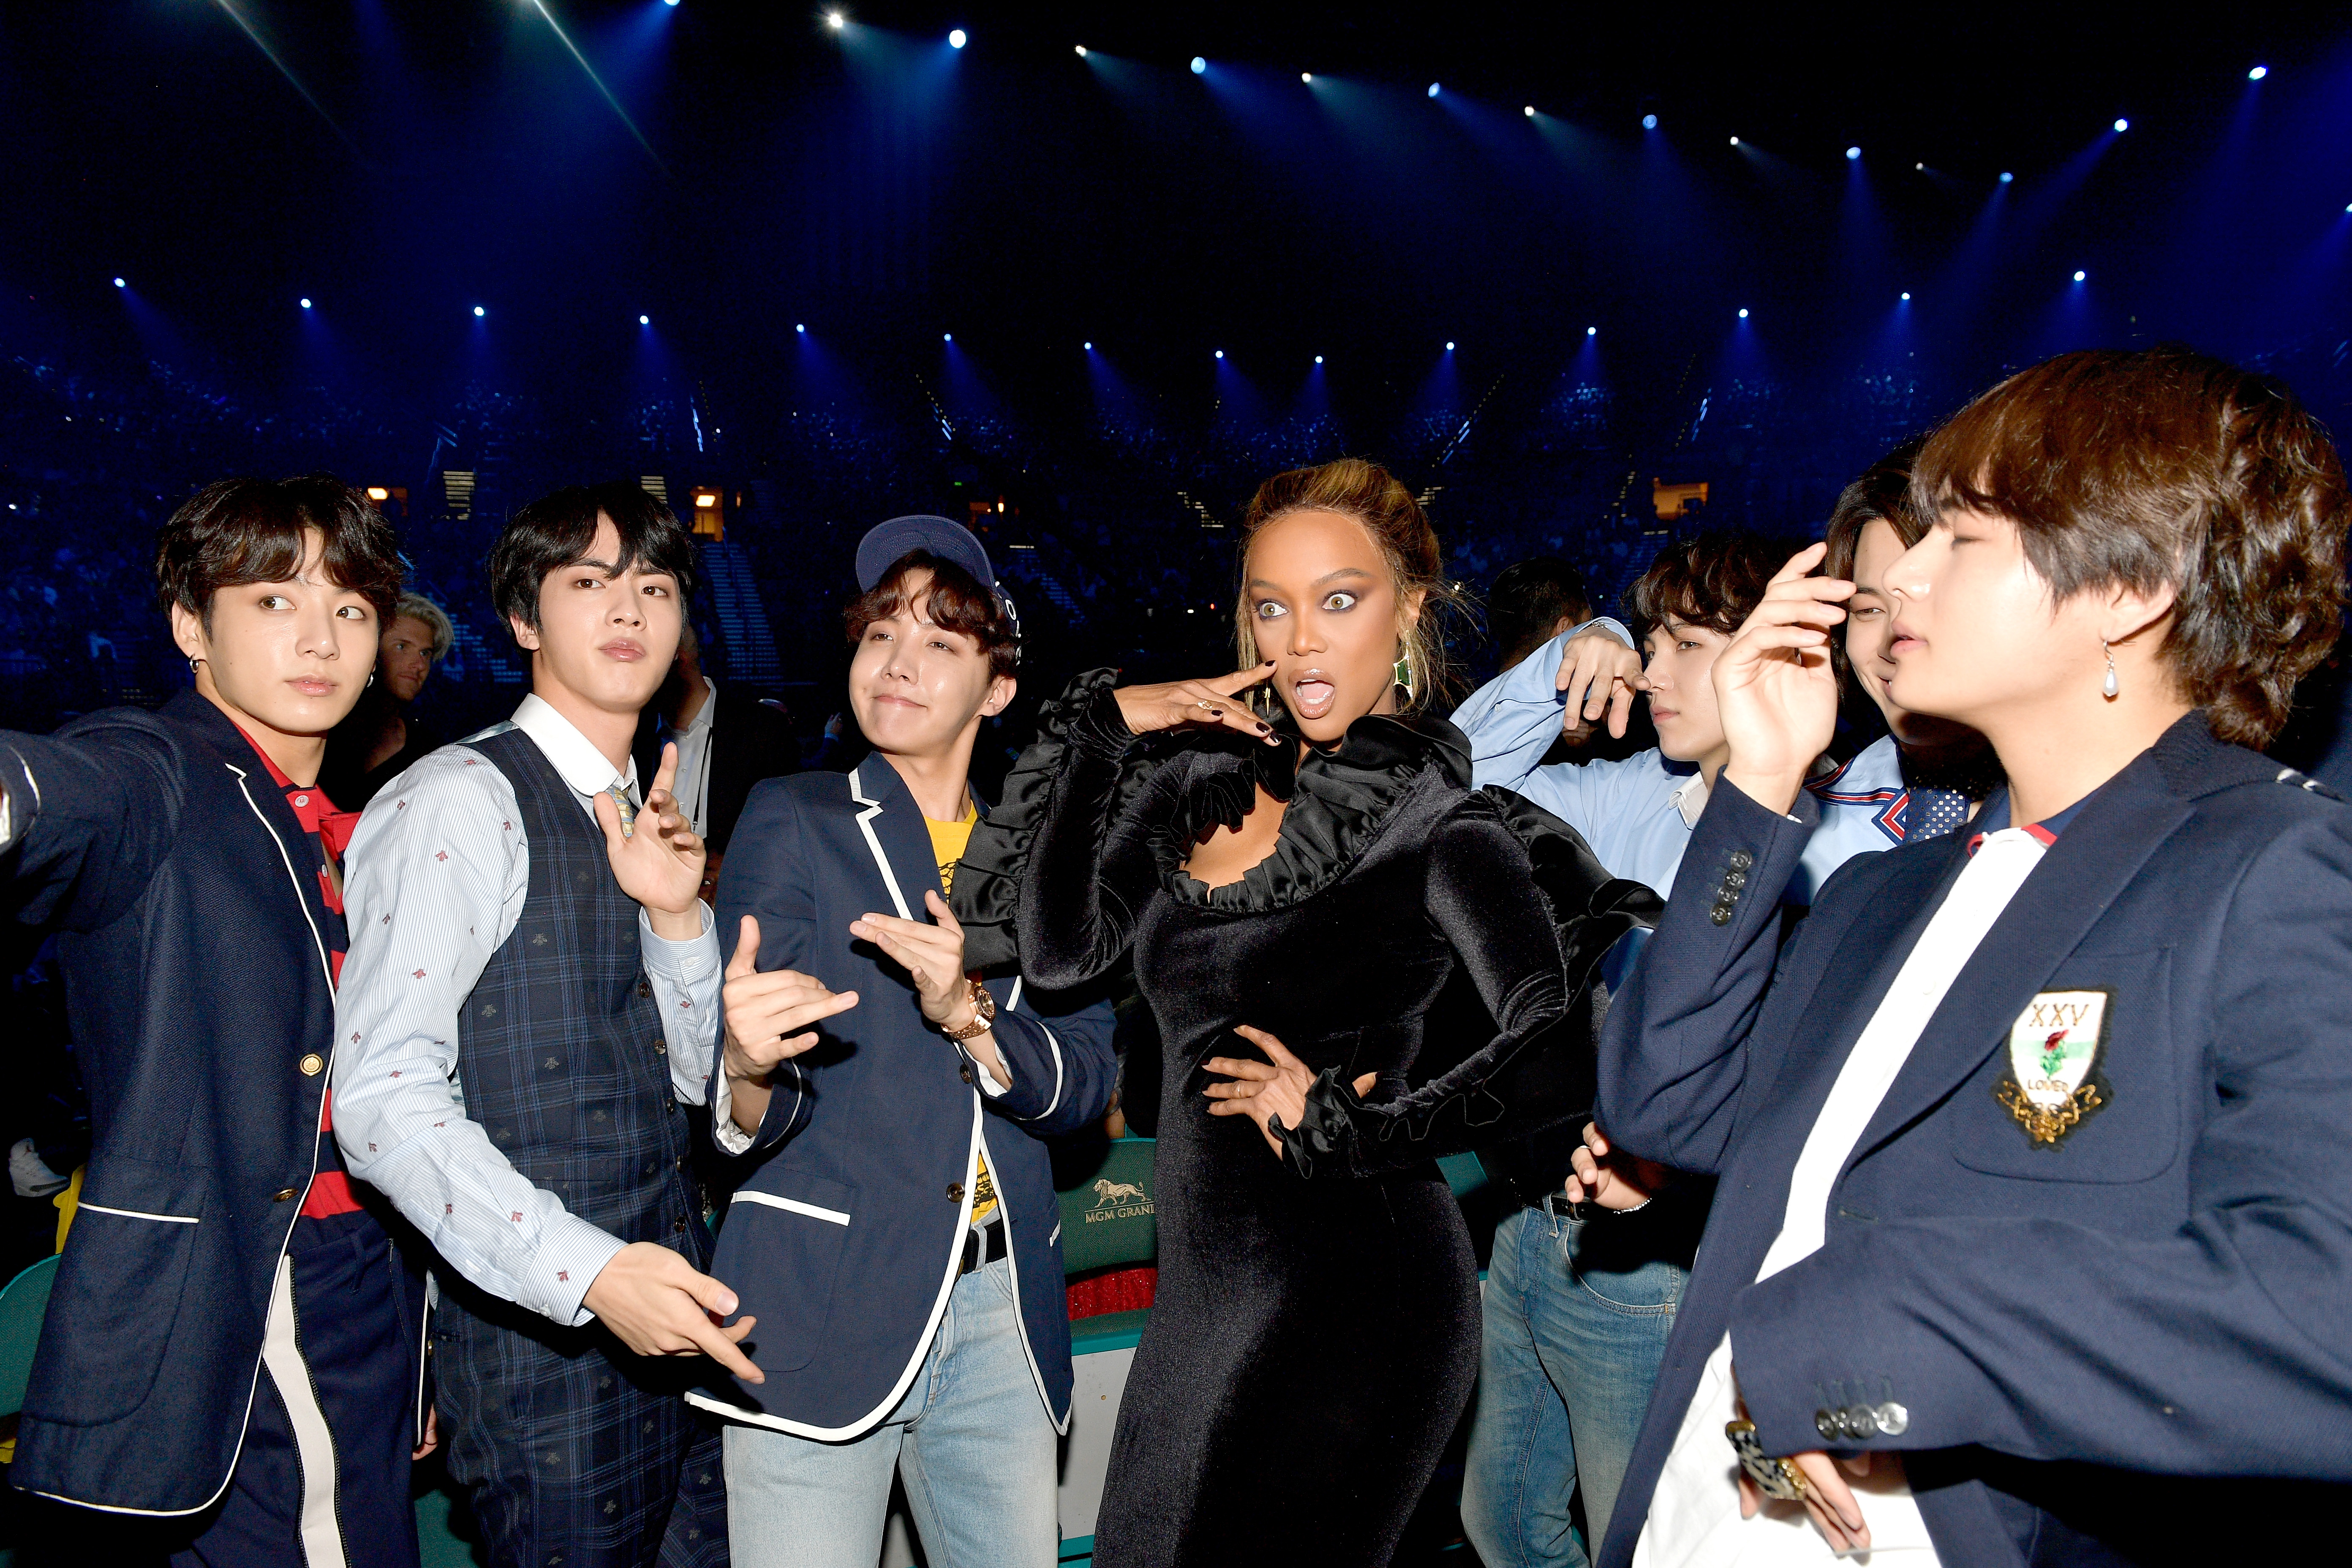 Model Tyra Banks with musical group BTS attend the 2018 Billboard Music Awards at MGM Grand Garden Arena on May 20, 2018 in Las Vegas, Nevada.